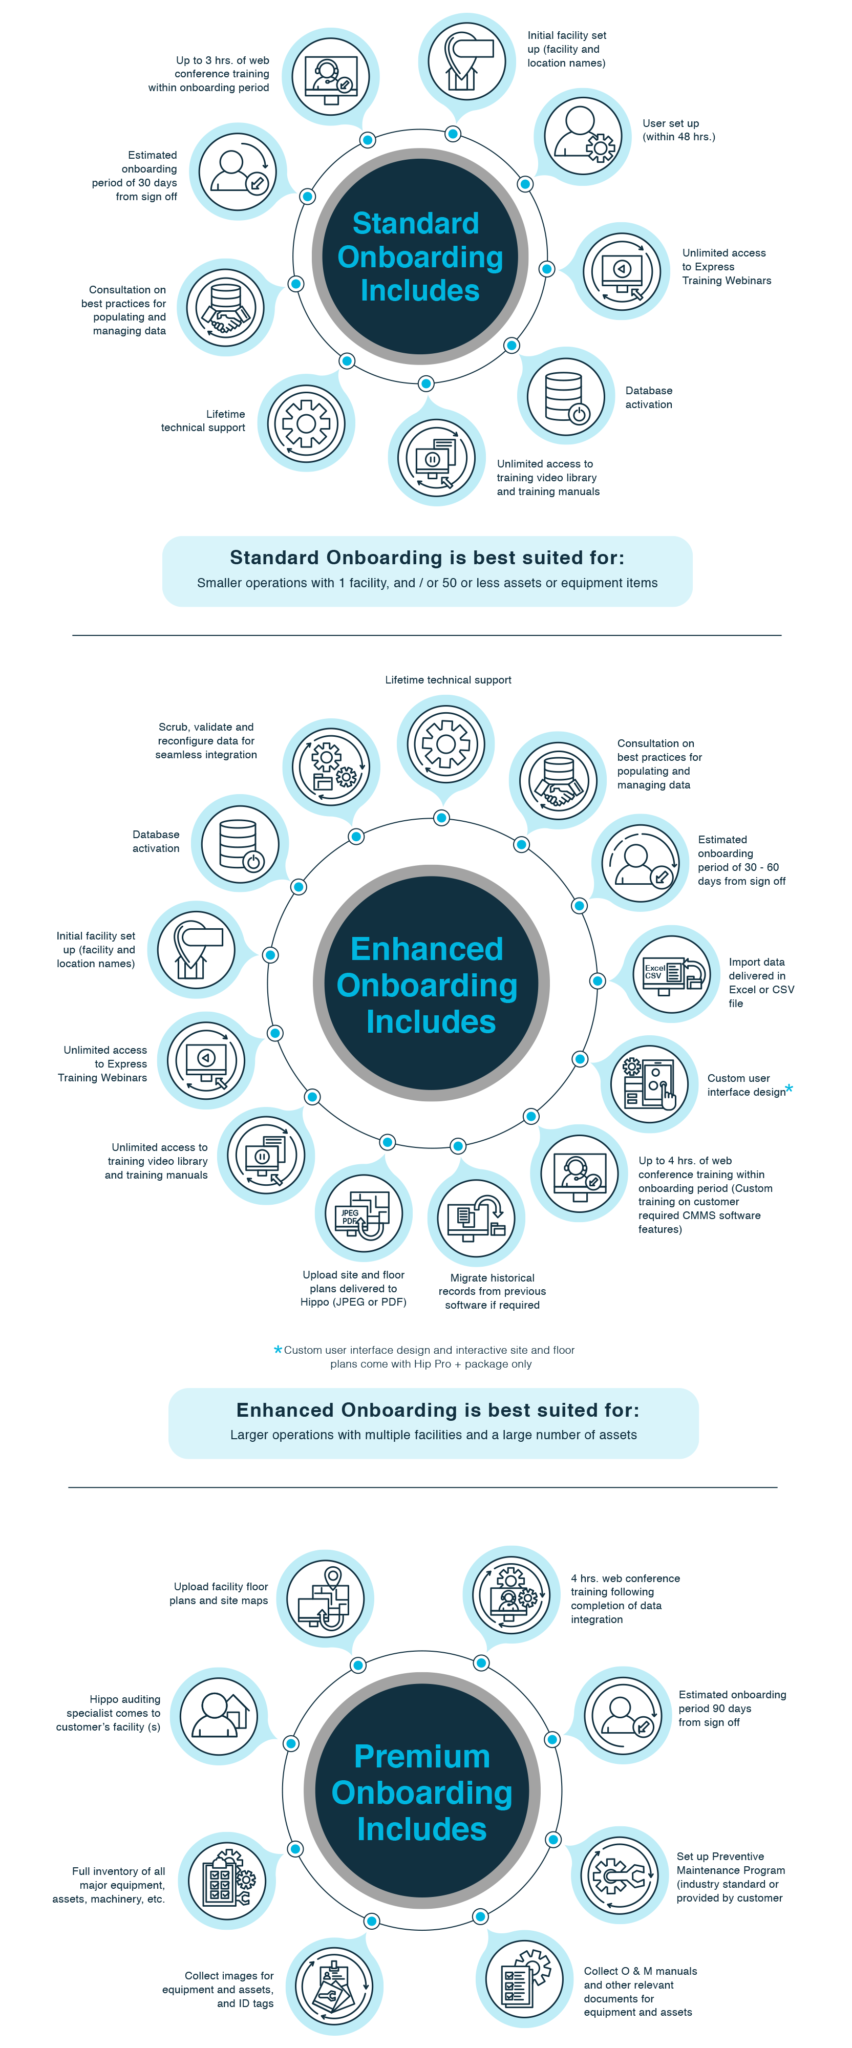 Hippo CMMS Onboarding Infographic